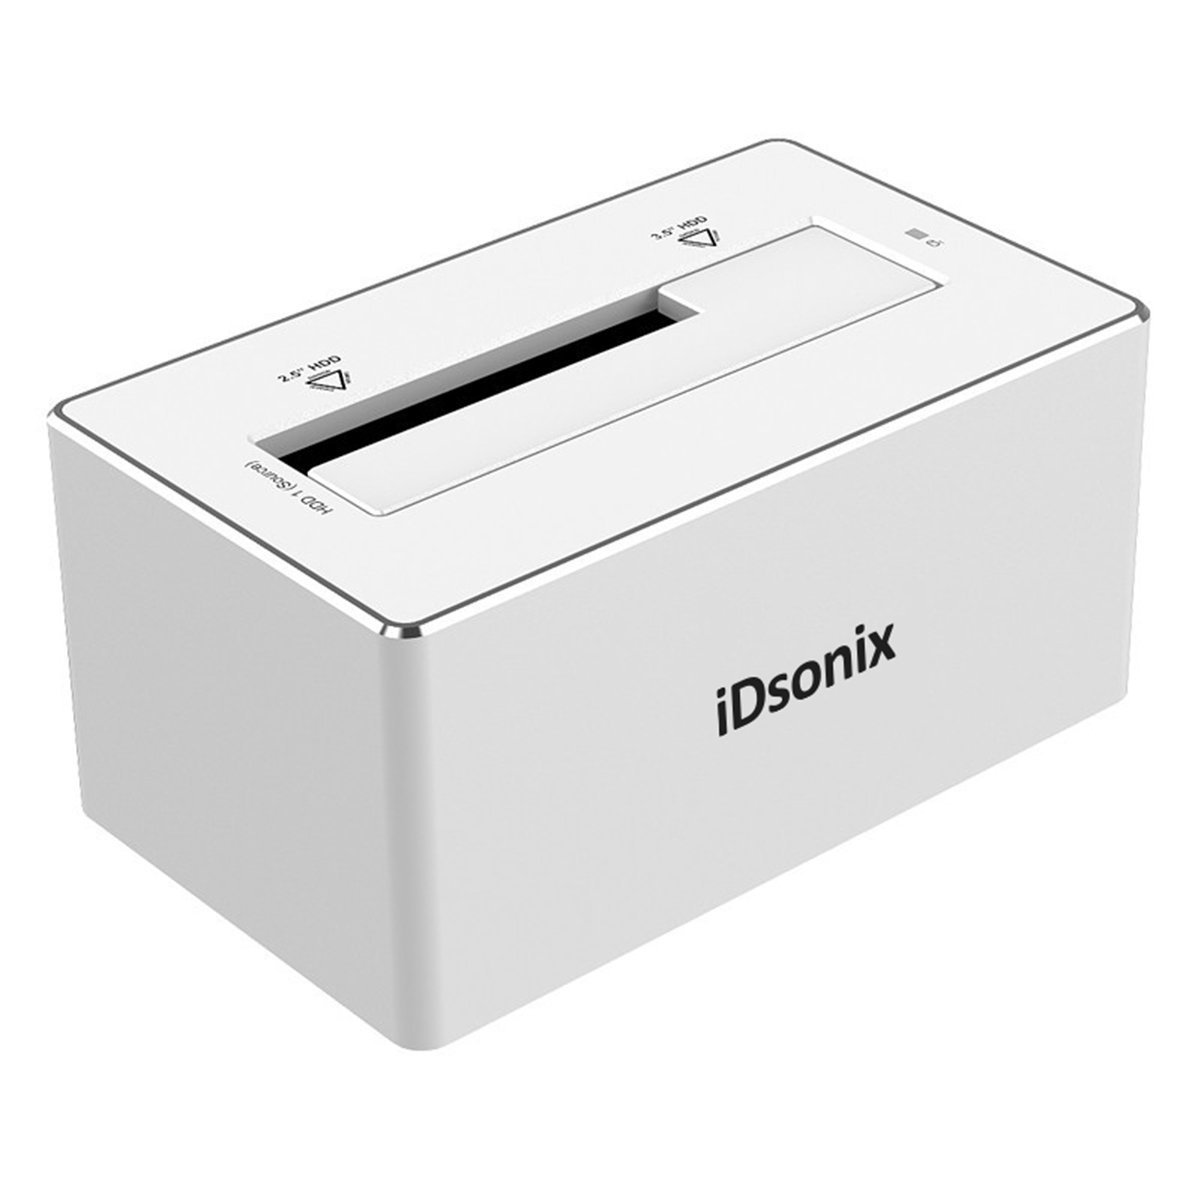 iDsonix USB 3.0 SATA III Aluminum HDD Docking Station for 2.5 3.5 inch HDD SSD UASP-Silver